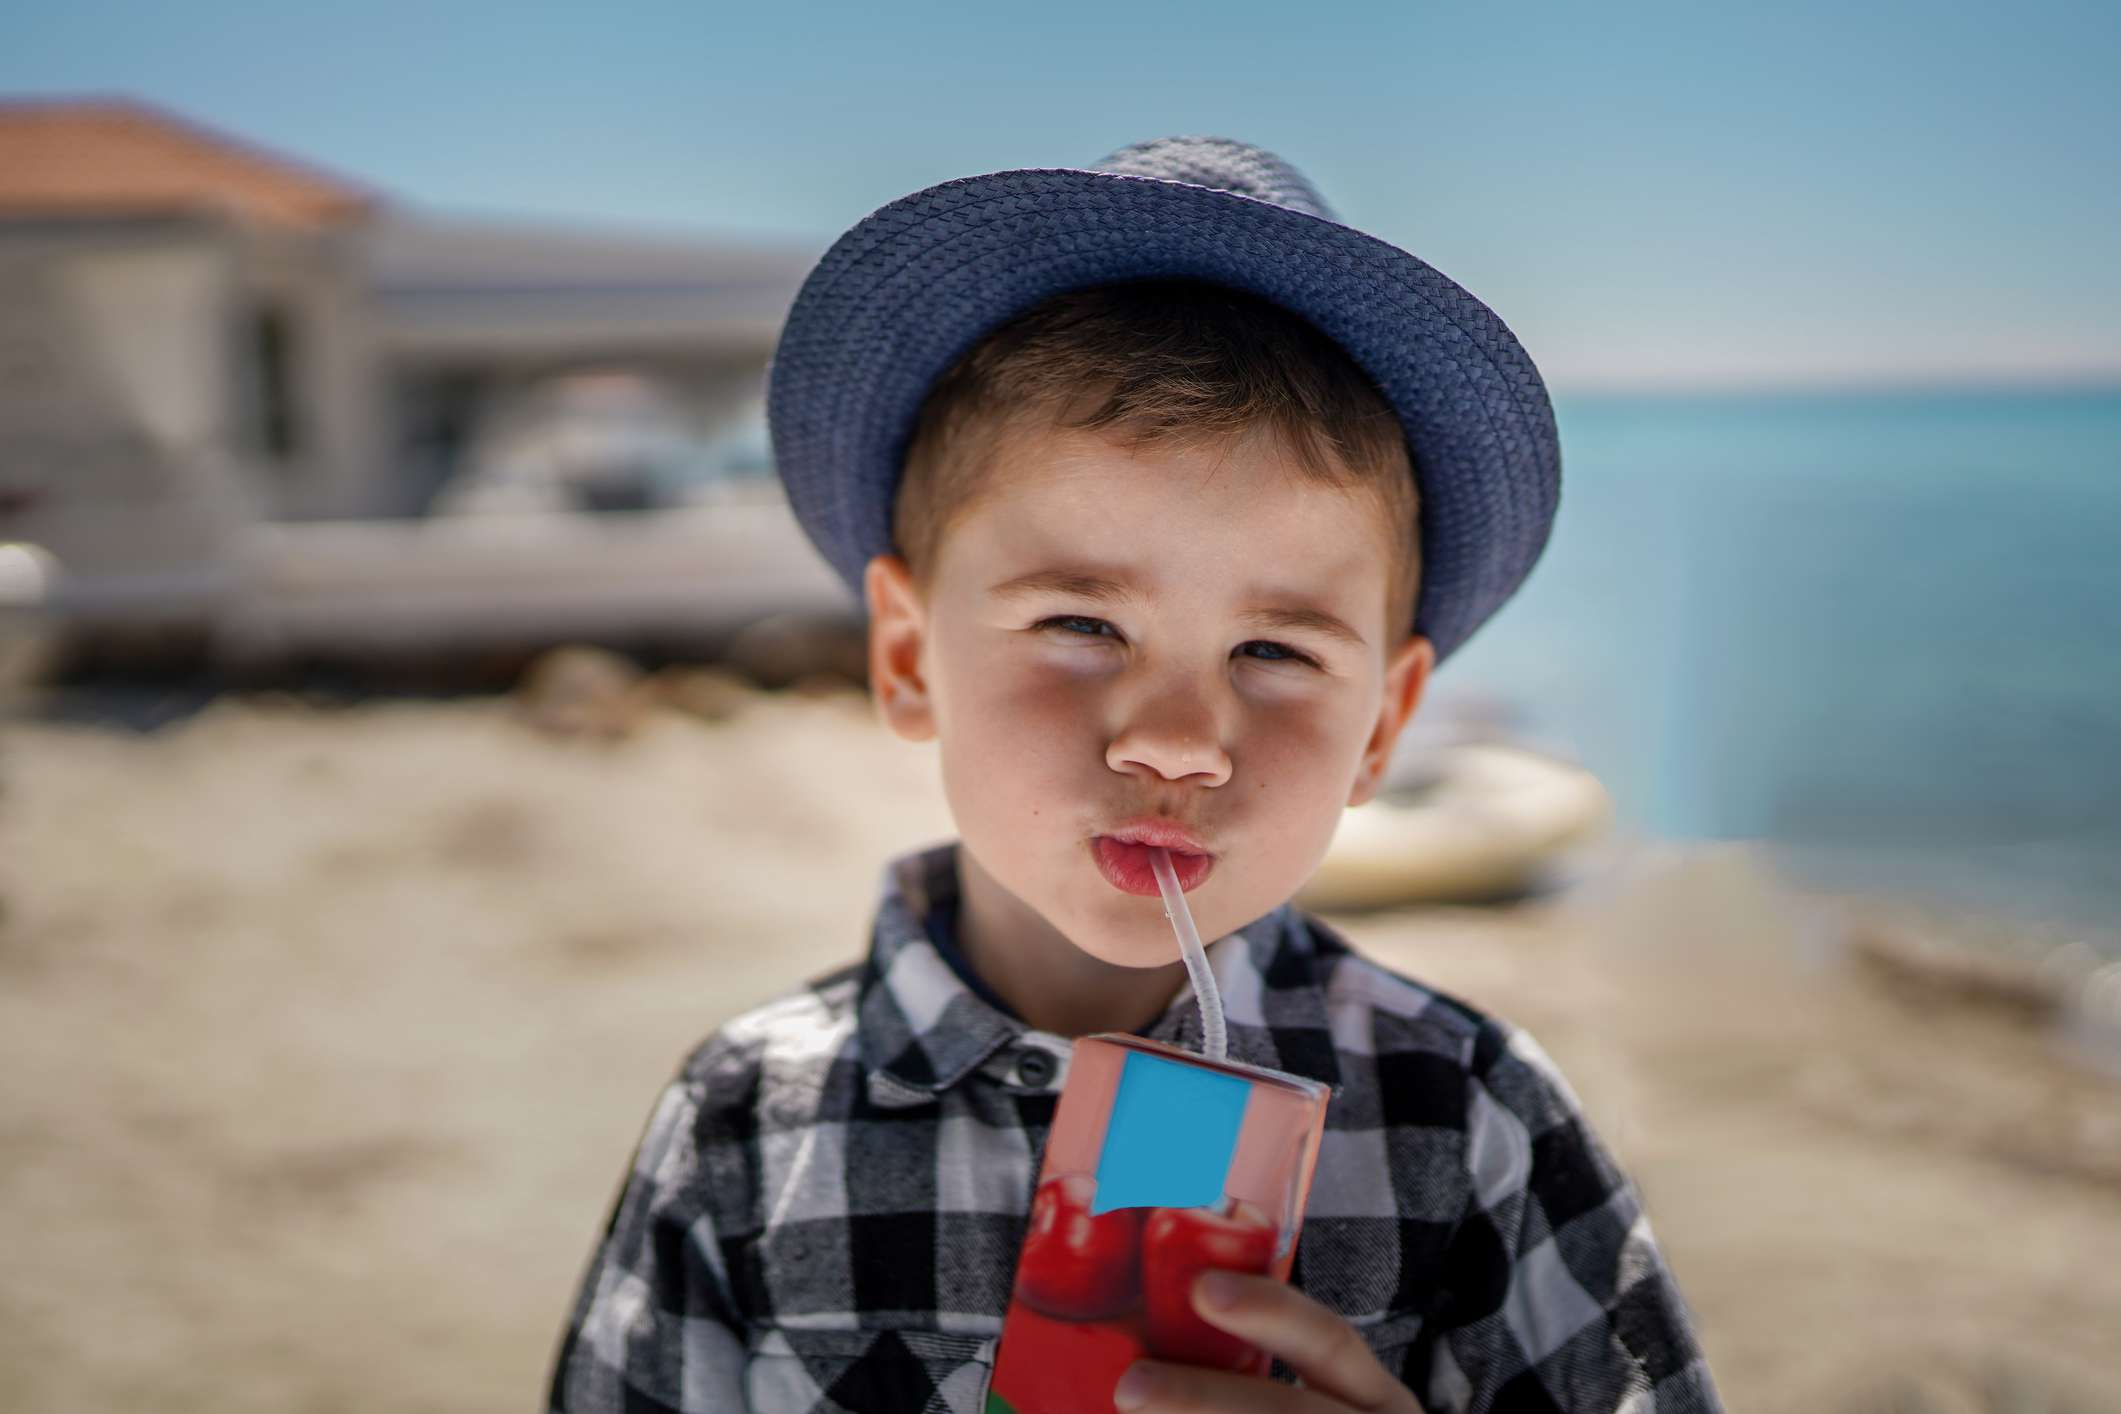 A child at the beach with a juice box.